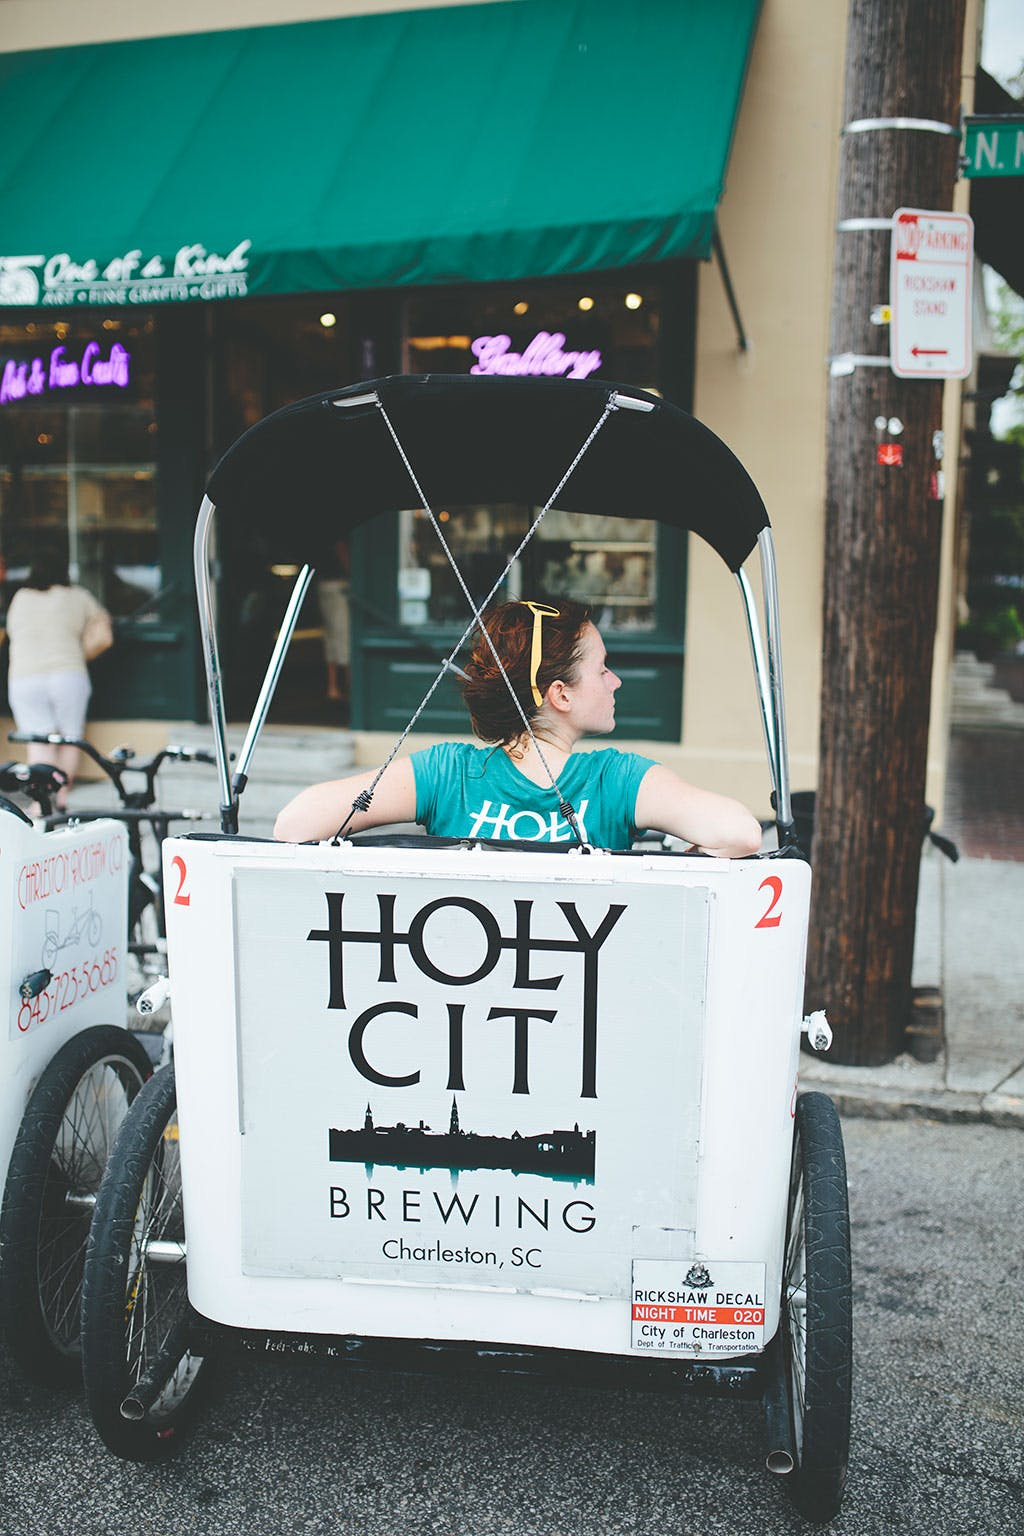 Holy City brewing cab